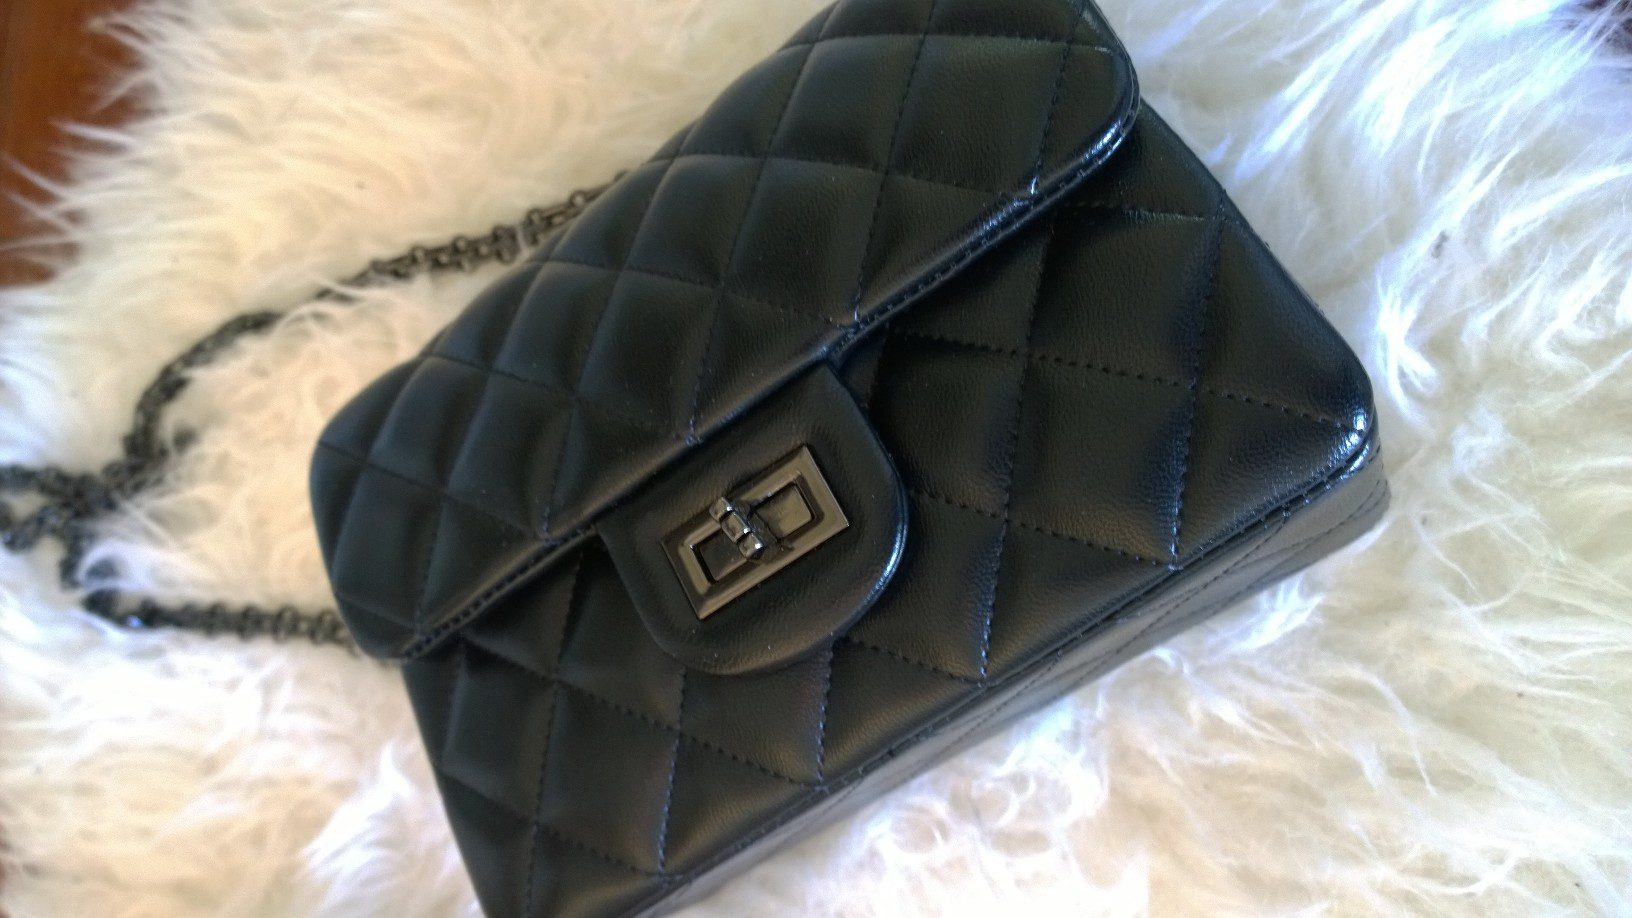 chanel dupe at dixie outlet mall